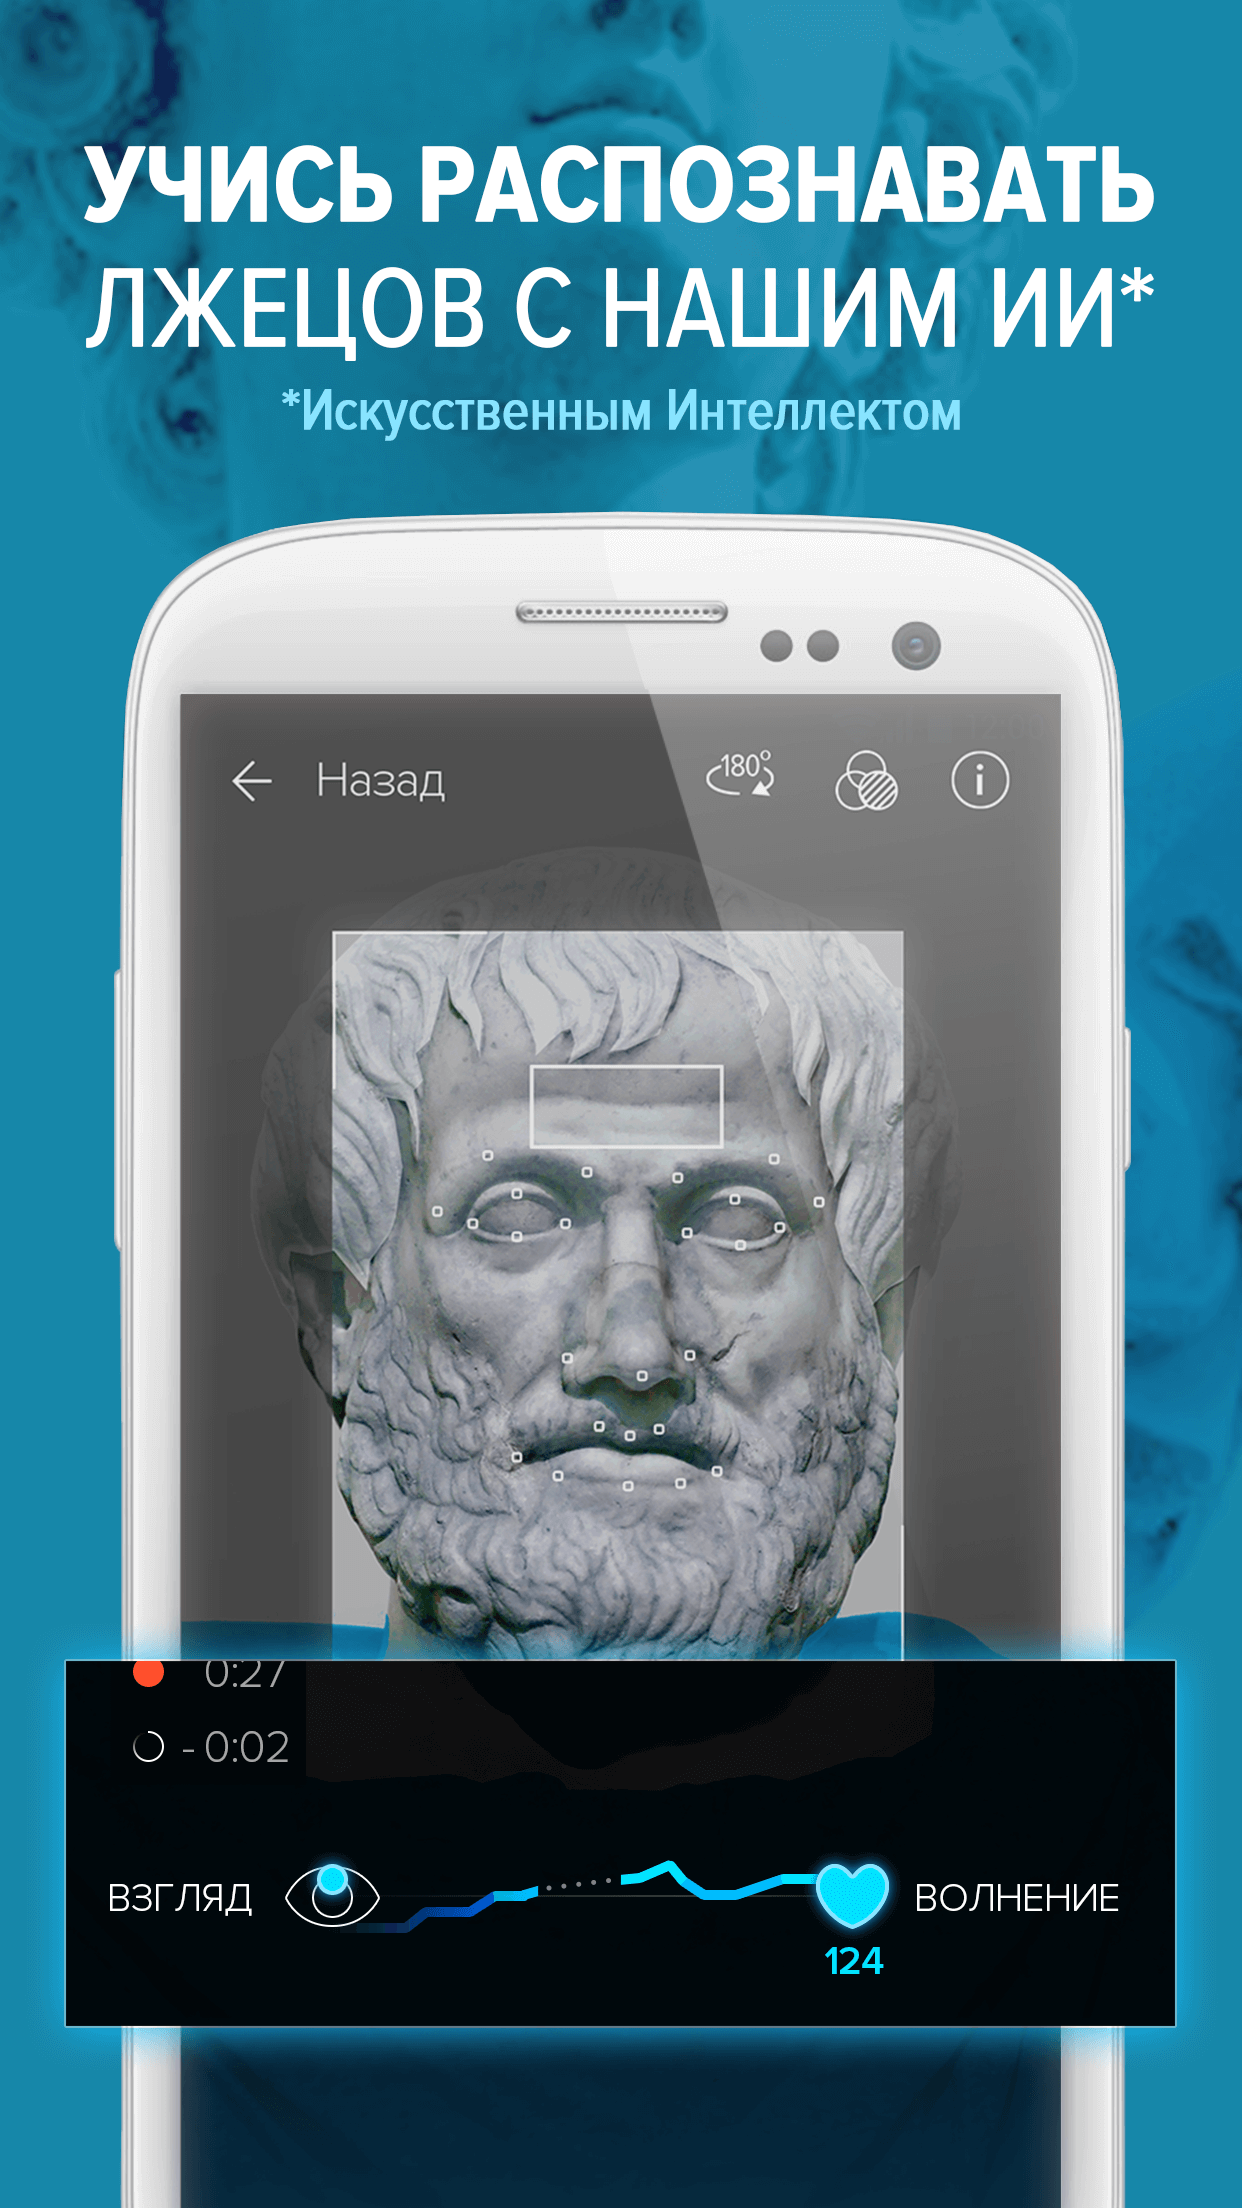 android_rus_5-5inch_display_portrait_1242x2208_screen2.png